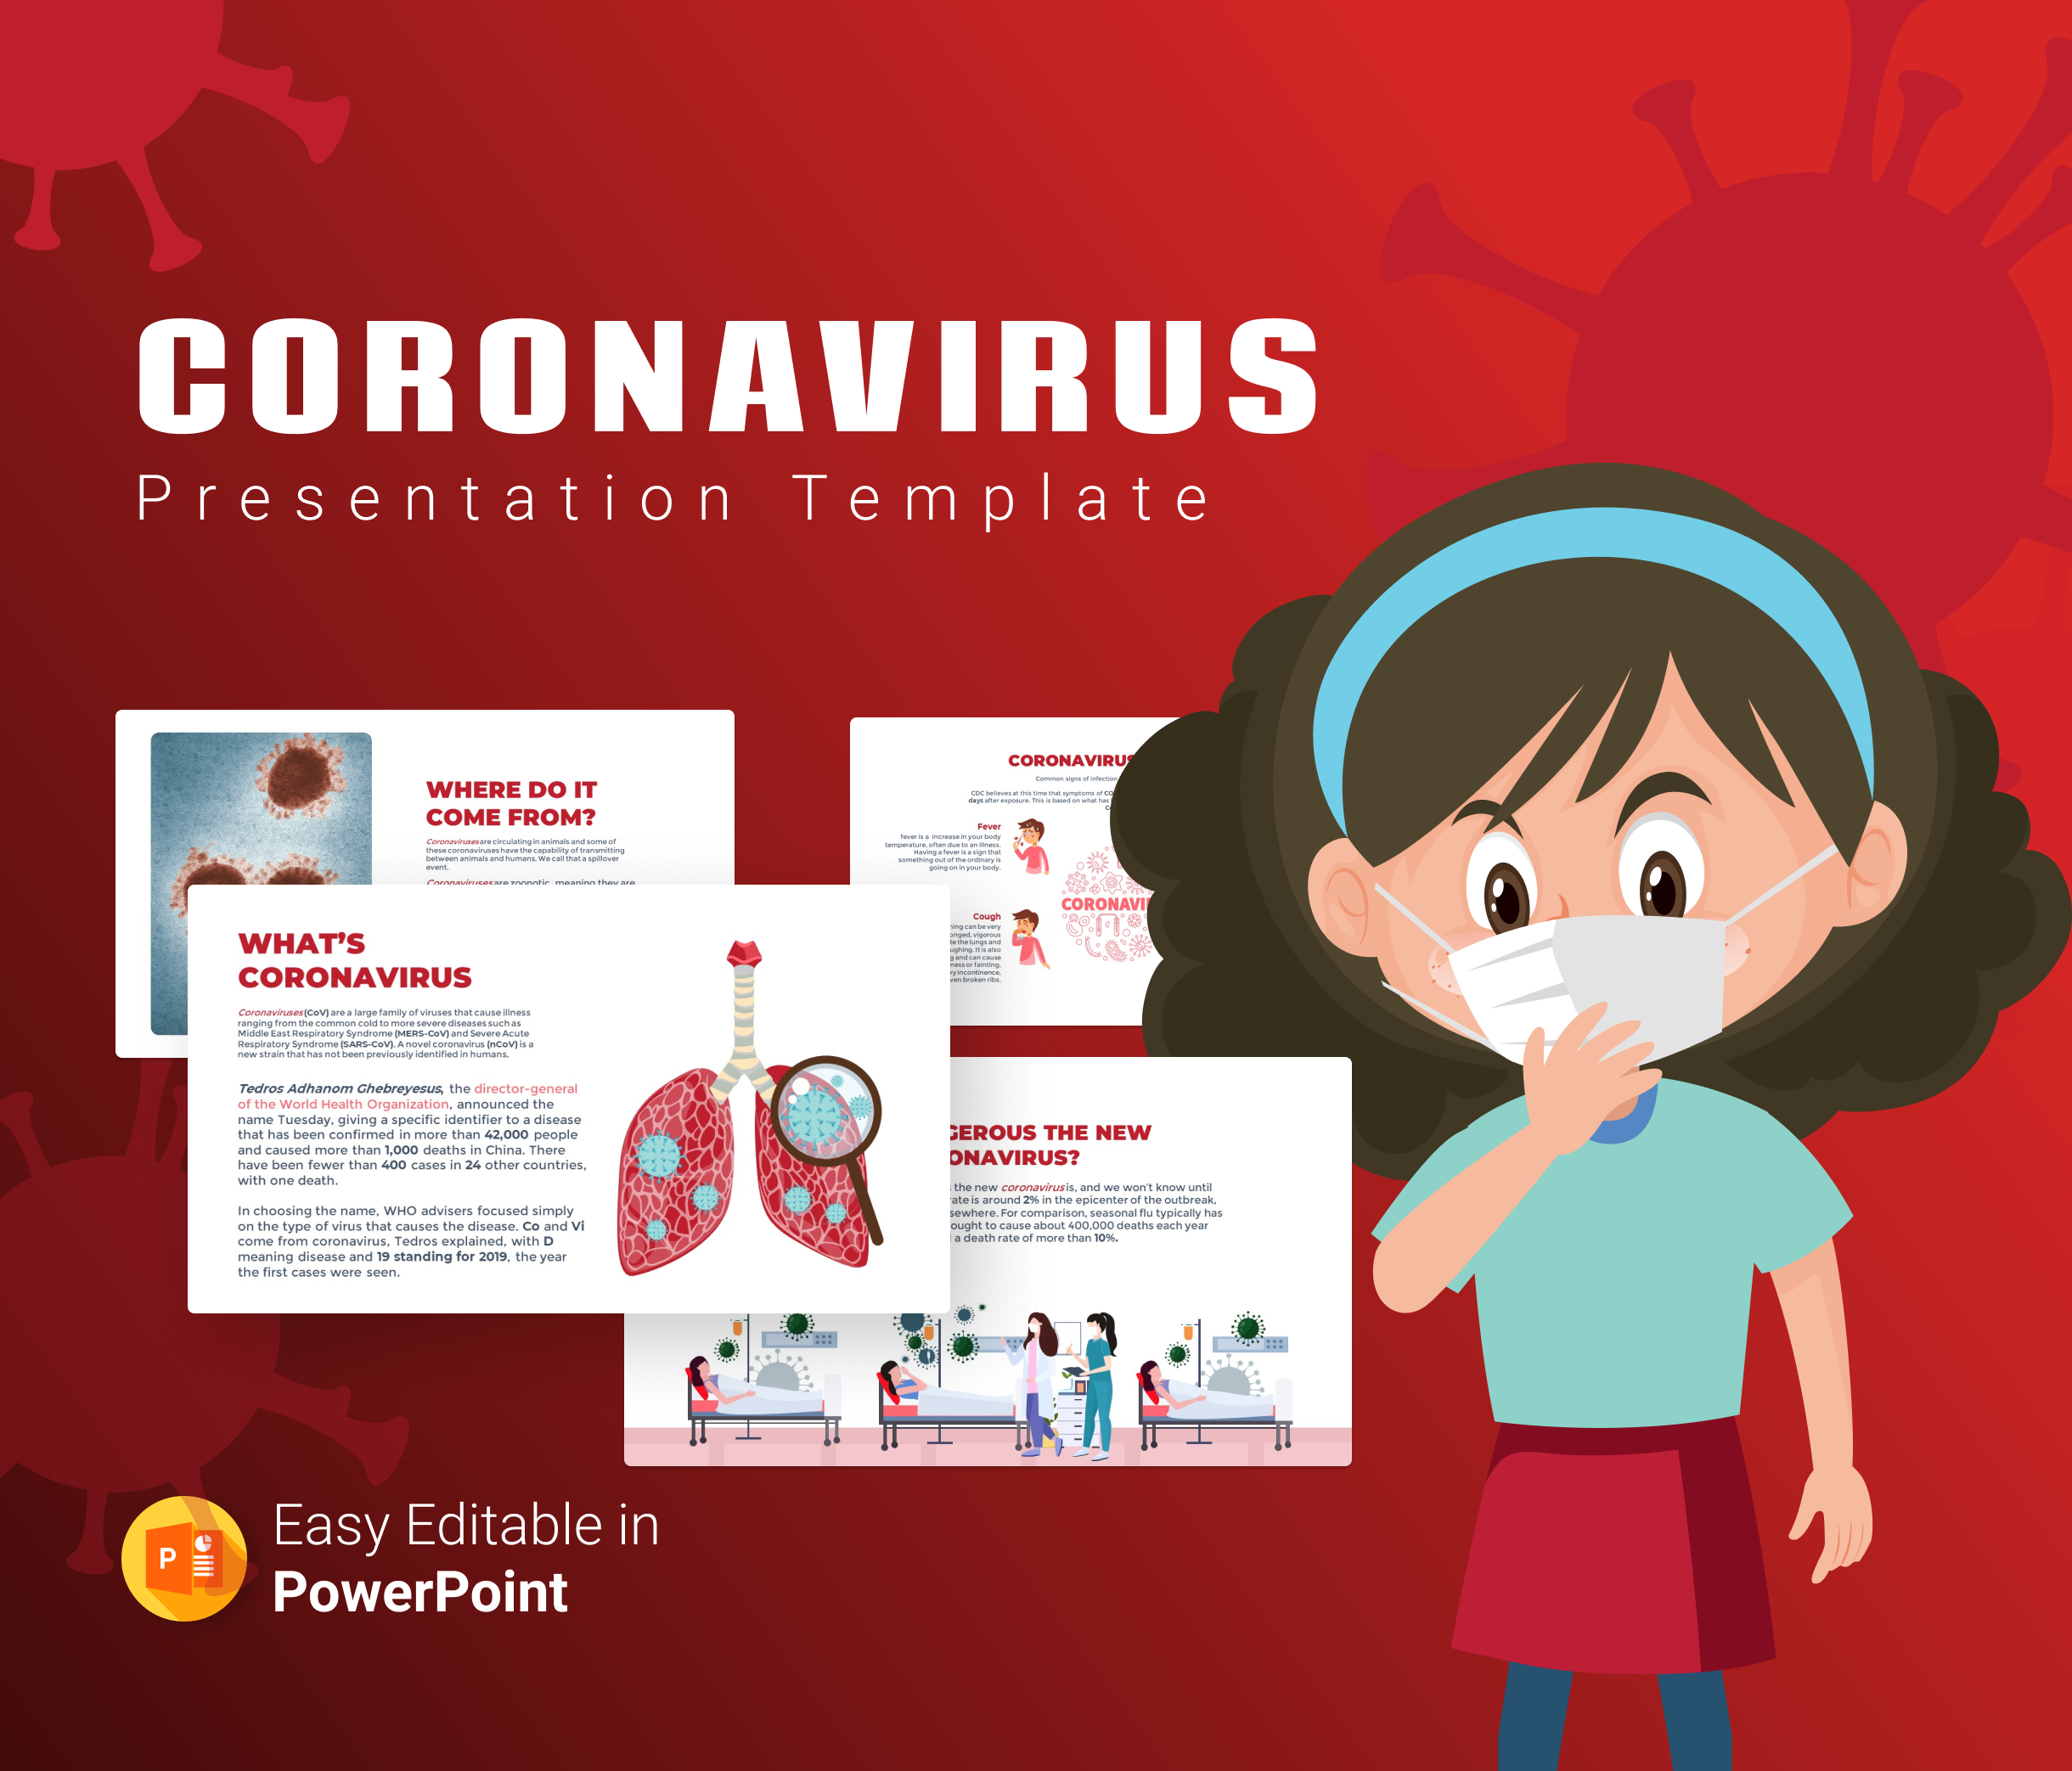 Corona virus PowerPoint Presentation Template